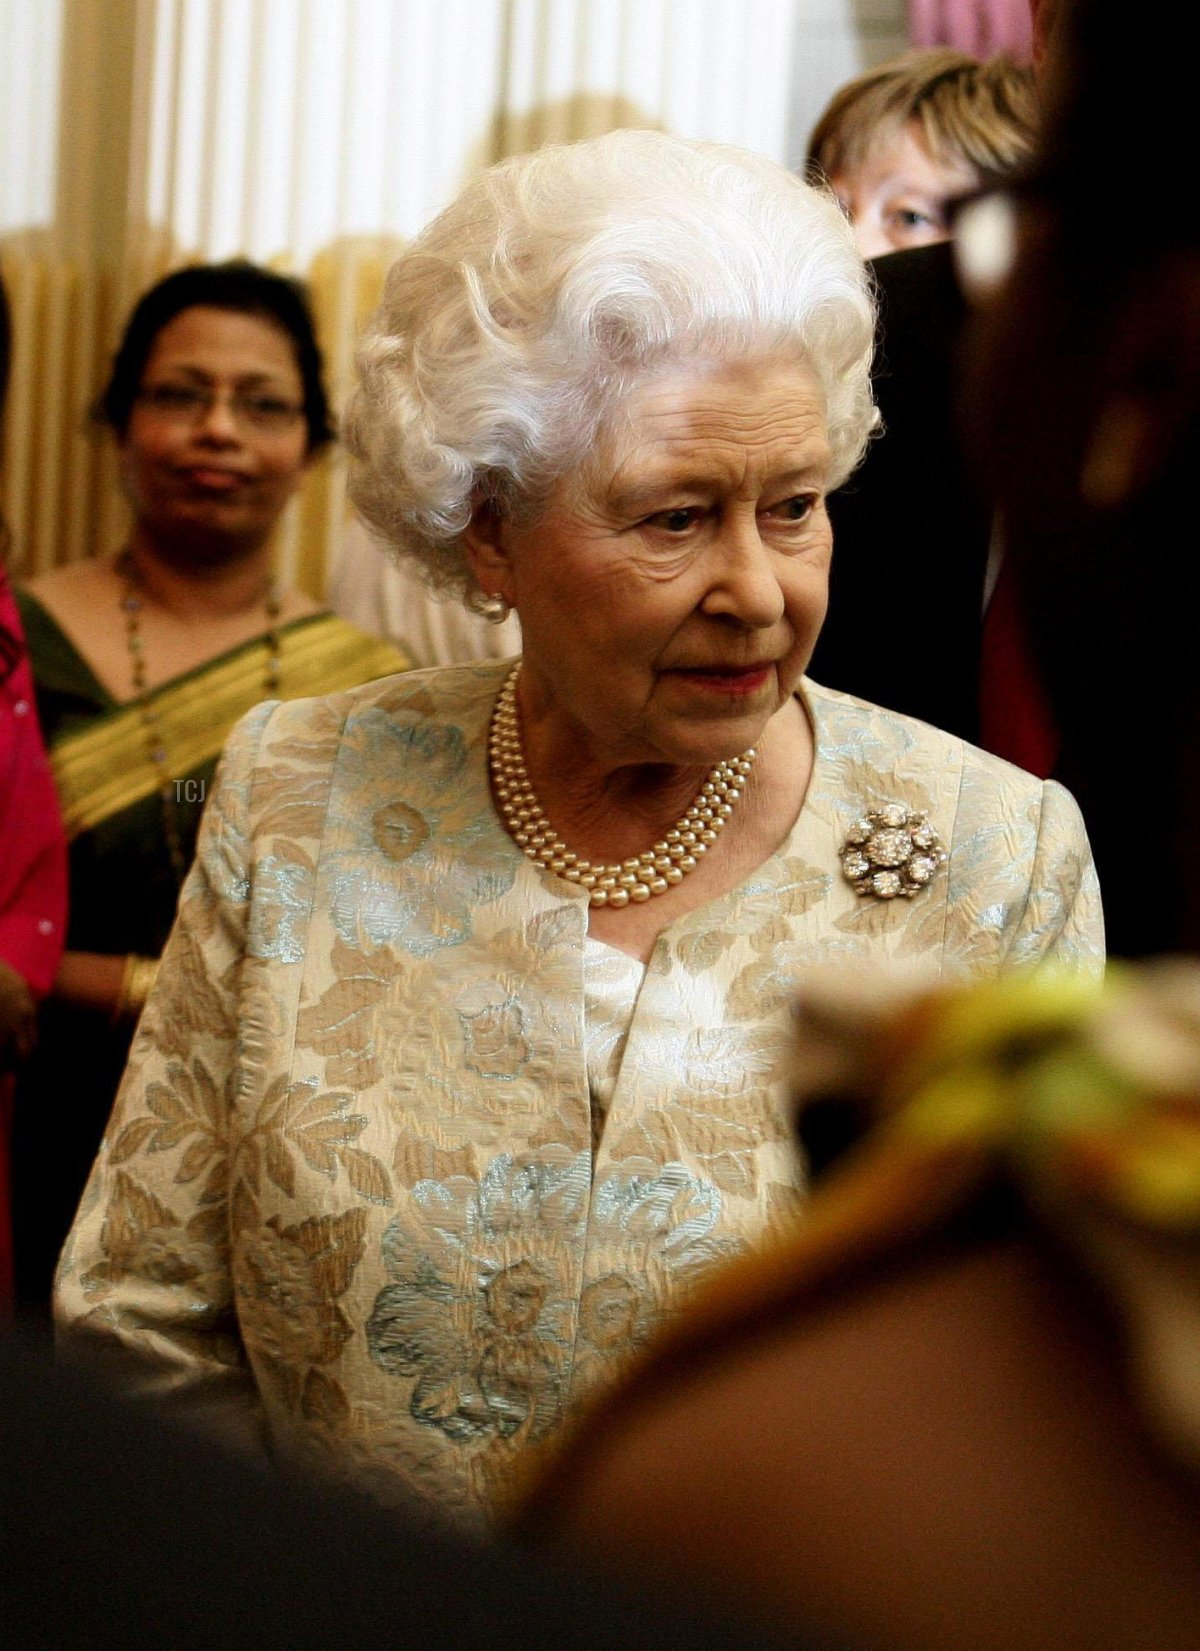 The Queen attends the Commonwealth Day Reception at the Commonwealth Secretariat, Marlborough House, London, 10 Mar 2008